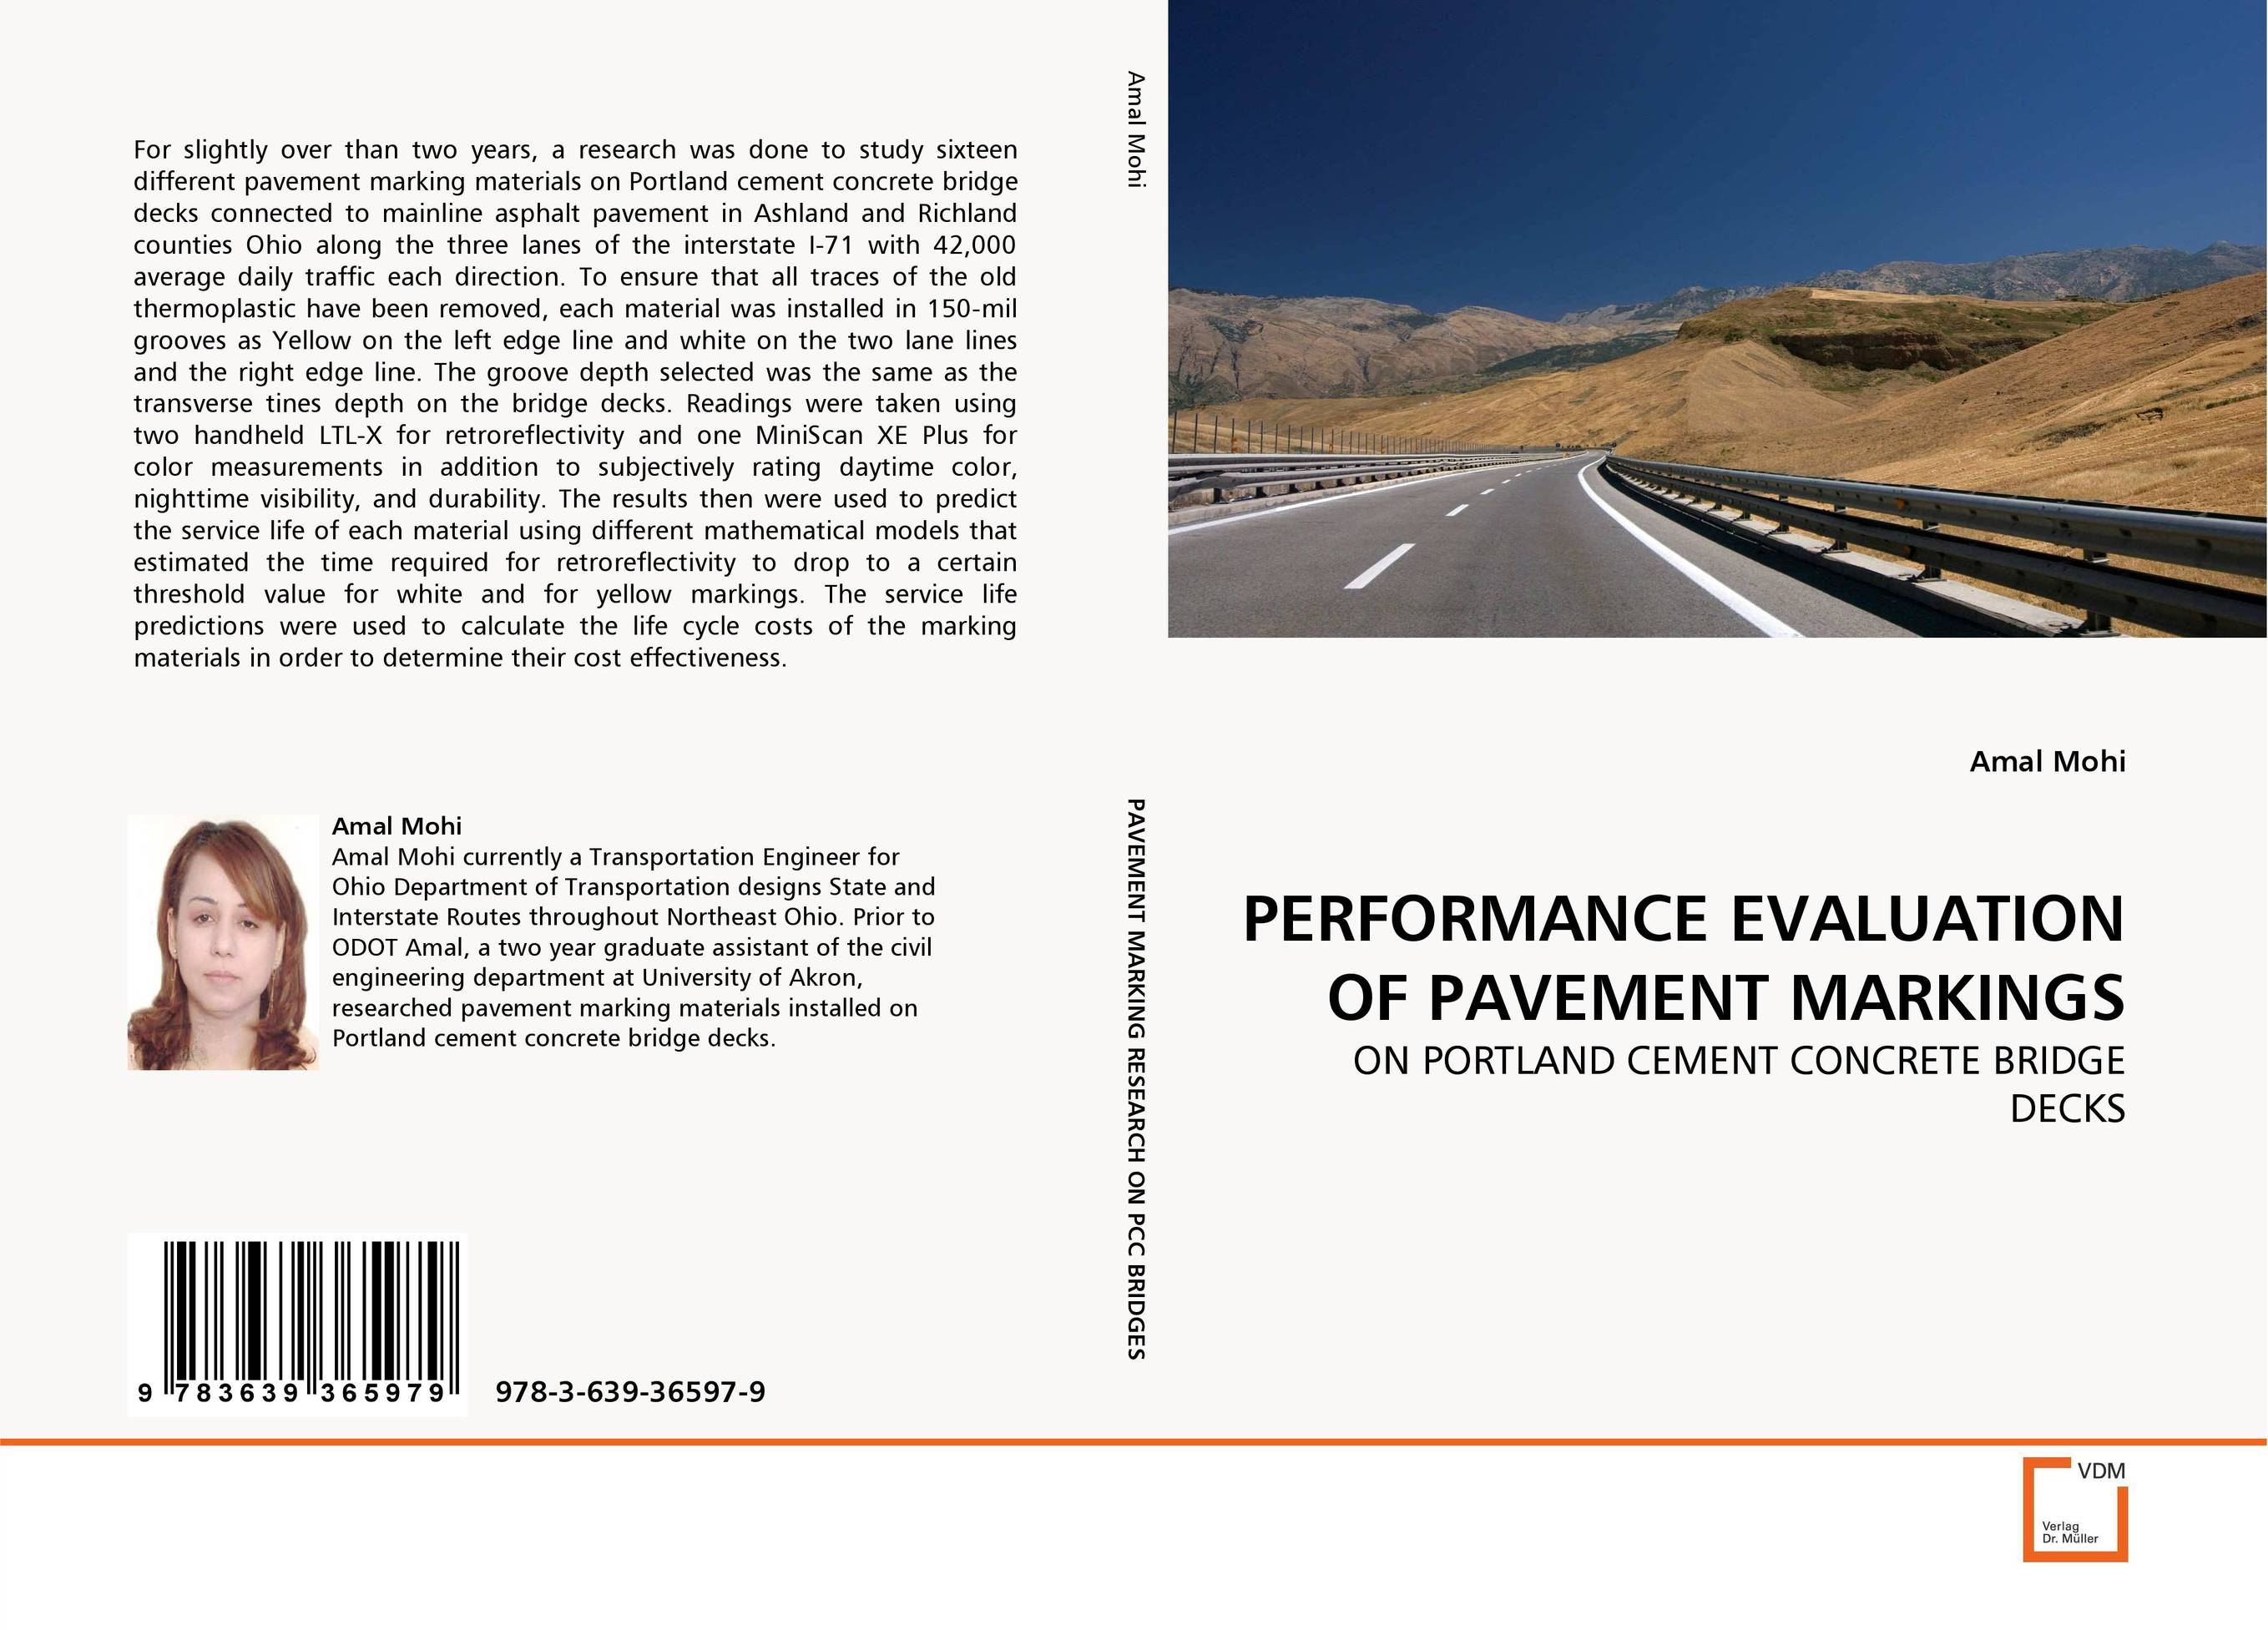 PERFORMANCE EVALUATION OF PAVEMENT MARKINGS a new perspective on the evaluation of elt materials